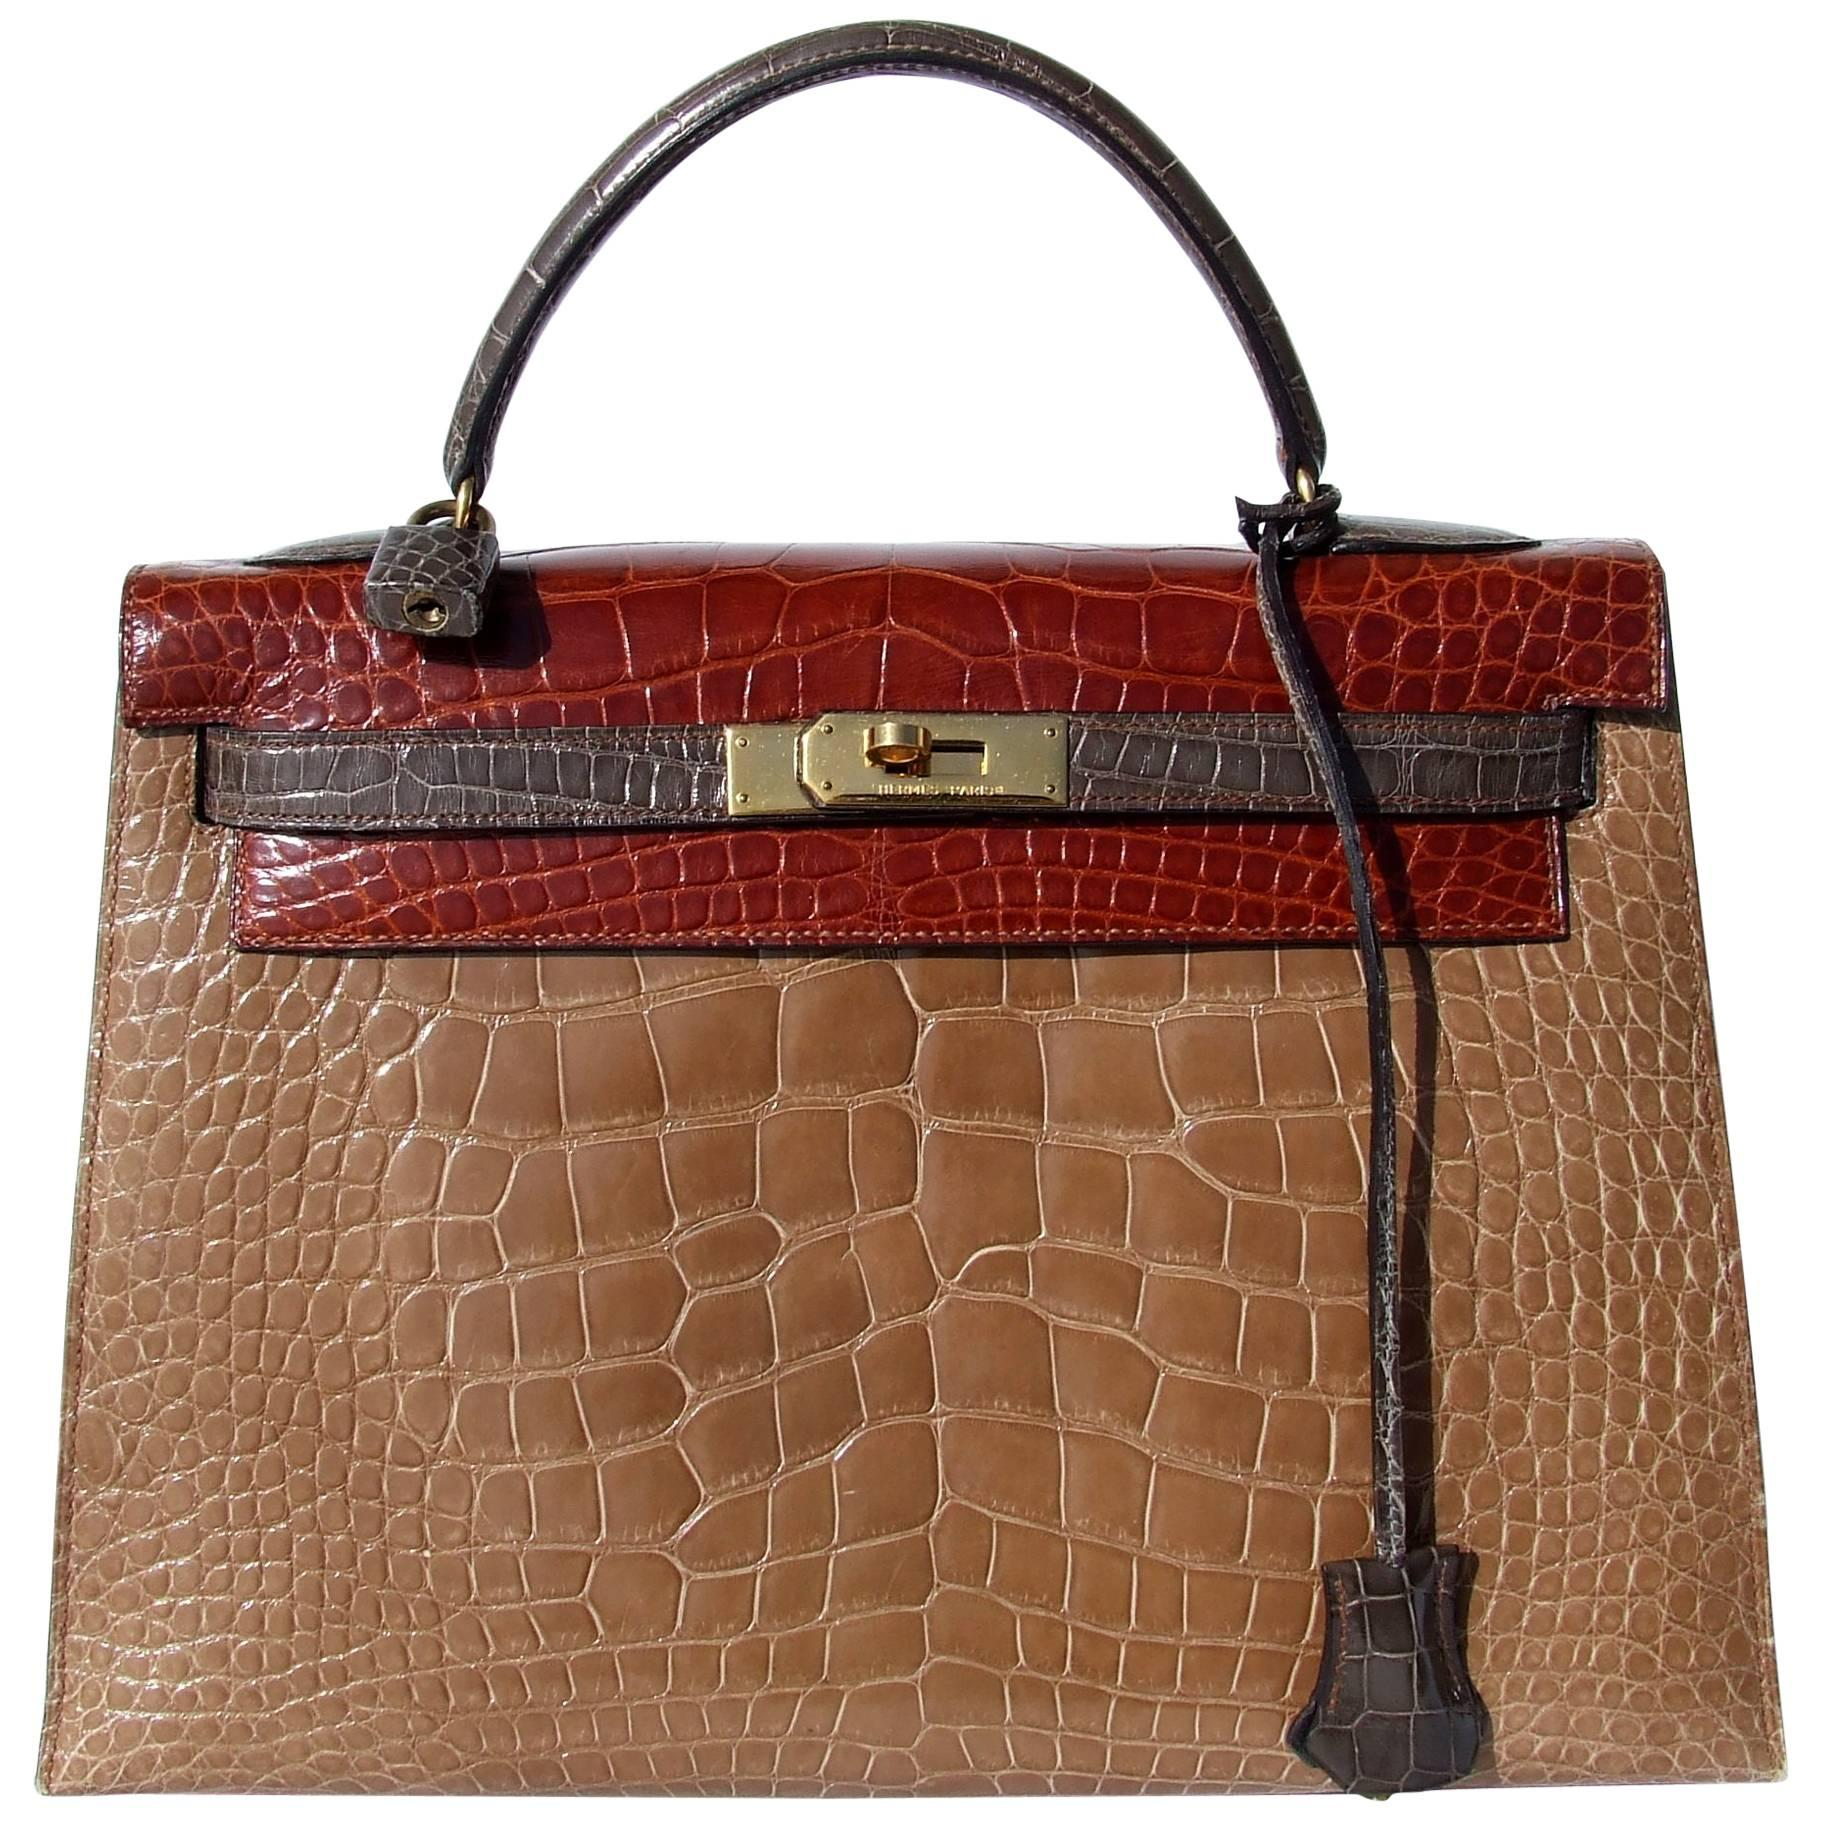 Exceptional Hermès Kelly Bag Tricolor Alligator Ghw 32 cm RARE Exc Cond